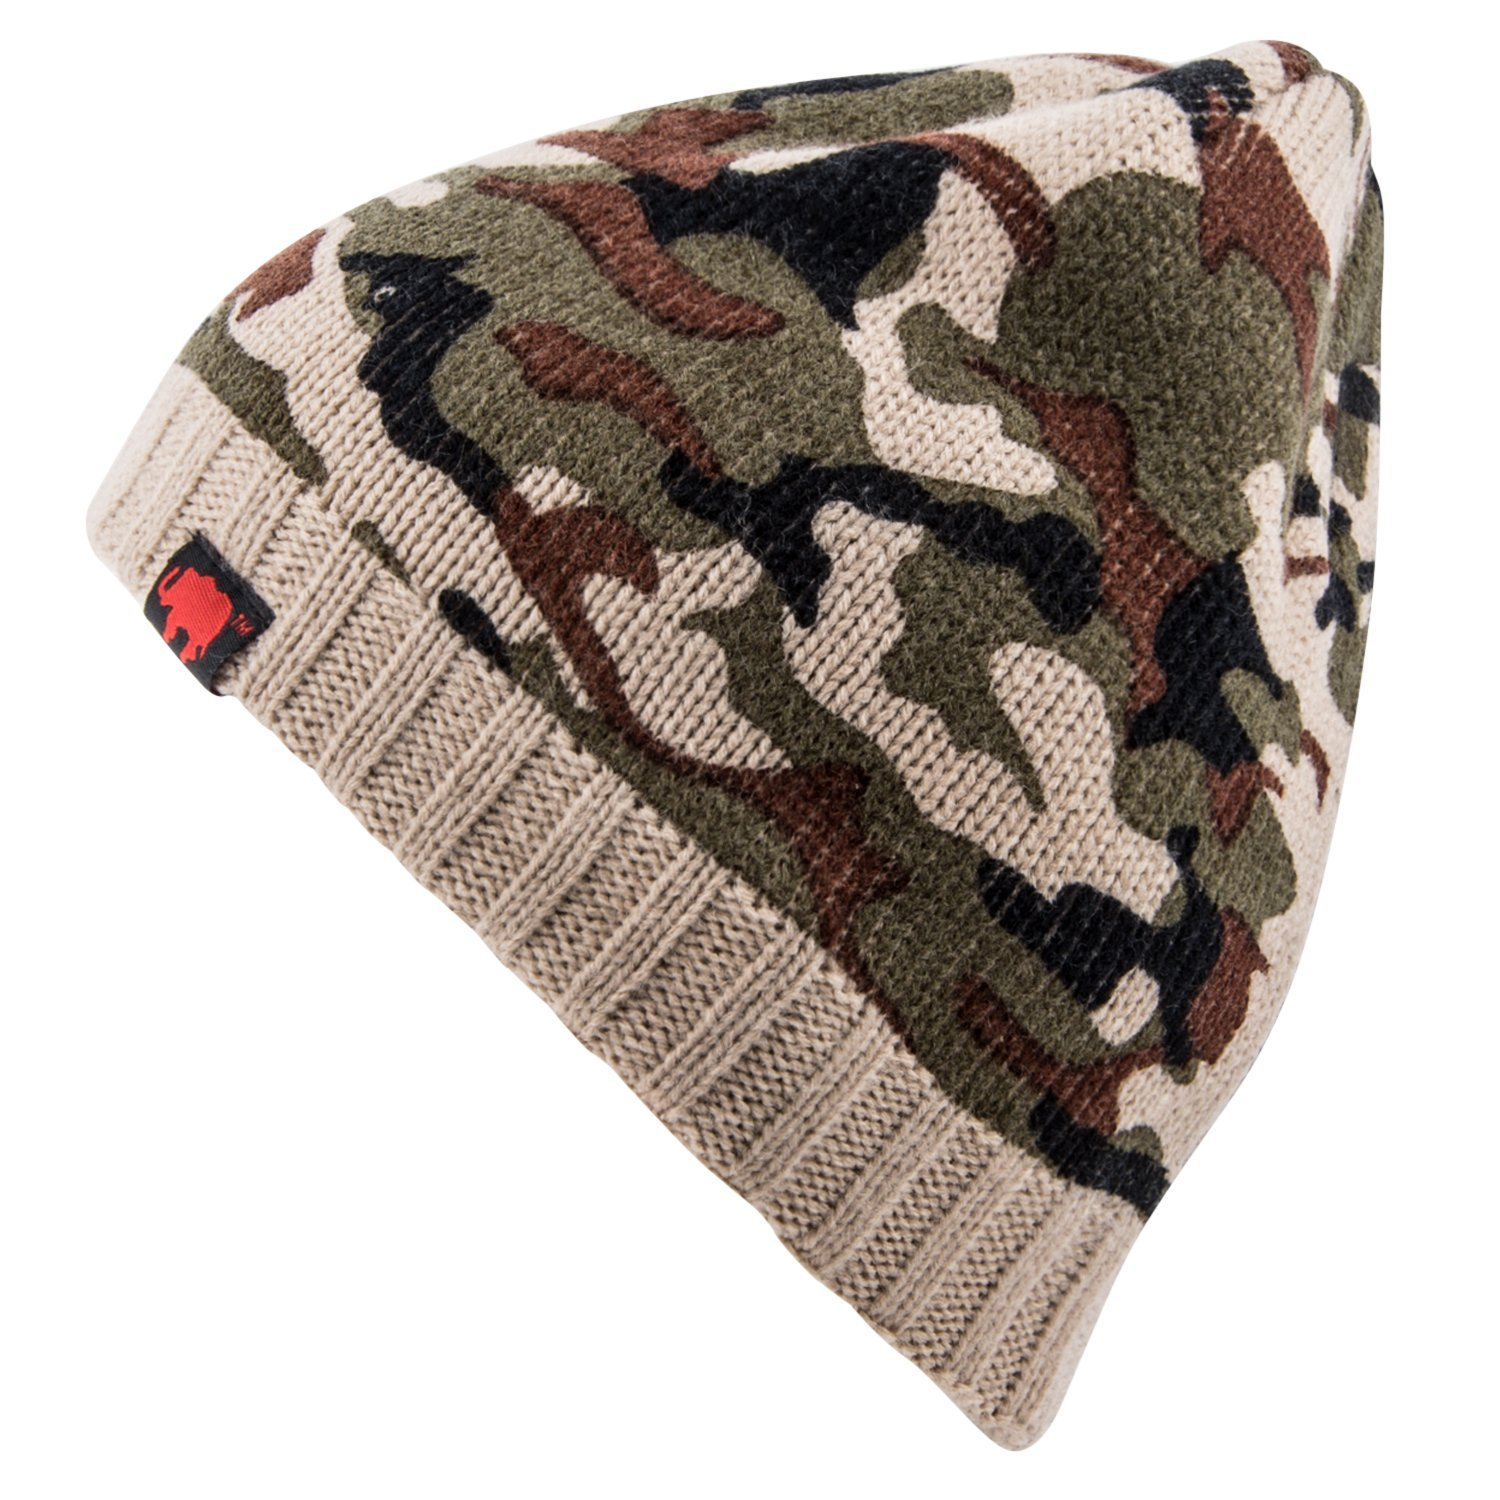 d0a5e466631 Get Quotations · Elephant Brand Beanie - Cold Weather Beanie